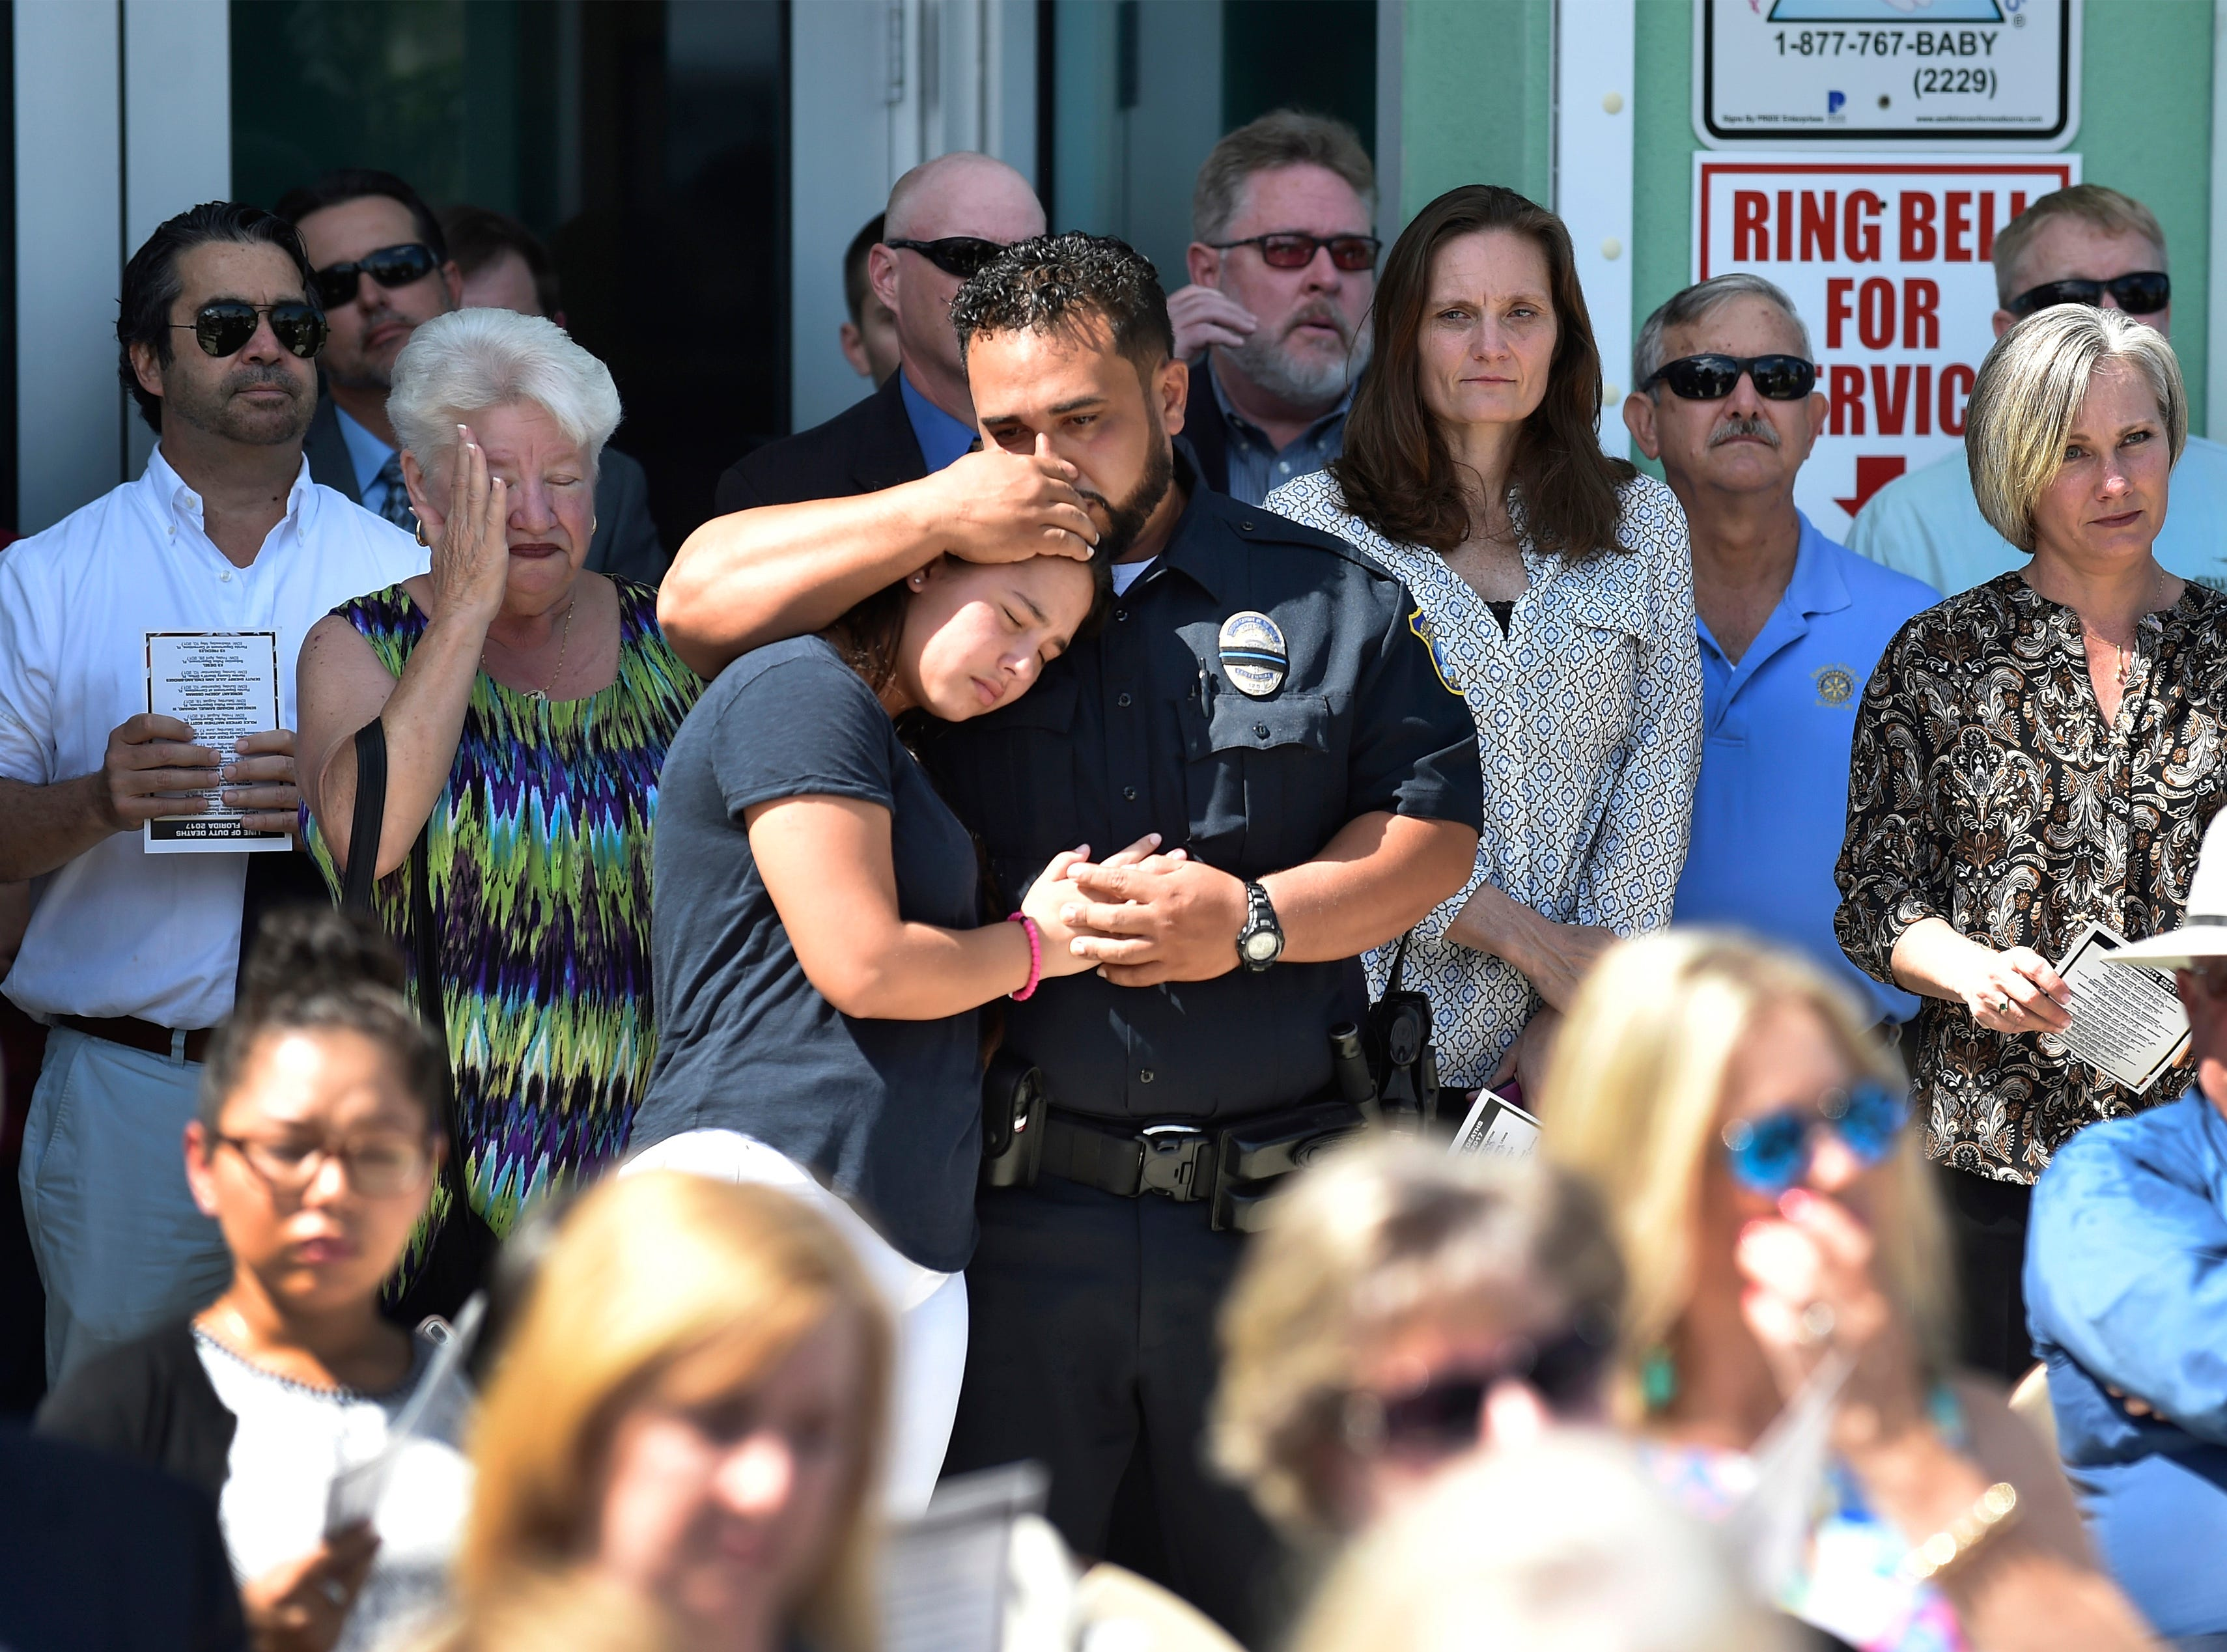 """City of Stuart Police K-9 Officer David Duran (center) and his daughter Naylani, 16, embrace after Officer Duran placed a plaque for his police K-9 Cody on the new K-9 Memorial unveiled during the Martin County Law Enforcement Officer's Memorial Service held Tuesday, May 15, 2018, at the Stuart Police Department. """"I feel pretty honored,"""" said Officer Duran, """"It's really nice to have that to memorialize these guys (K-9) that do a lot of work with us, often forgotten, it's really nice."""" K-9 Cody served eight years with the Stuart Police Department before retiring on June 25, 2015 and passing away December 15, 2017. The memorial service honored all the local law enforcement officers who gave the ultimate sacrifice for the citizens they serve, along with the unveiling of the K-9 memorial statue in front of the entrance of the Stuart Police Department. """"Remembering the law enforcement officers who gave their lives so that their citizens can enjoy the freedom and safety is very important,"""" said Stuart Police Chief David Dyess. """"We're also doing a K-9 memorial dedication here today where we honor our K-9 partners in our career, and I think it's also evident that we need to remember them as we do our law enforcement officers who have given the ultimate sacrifice."""""""